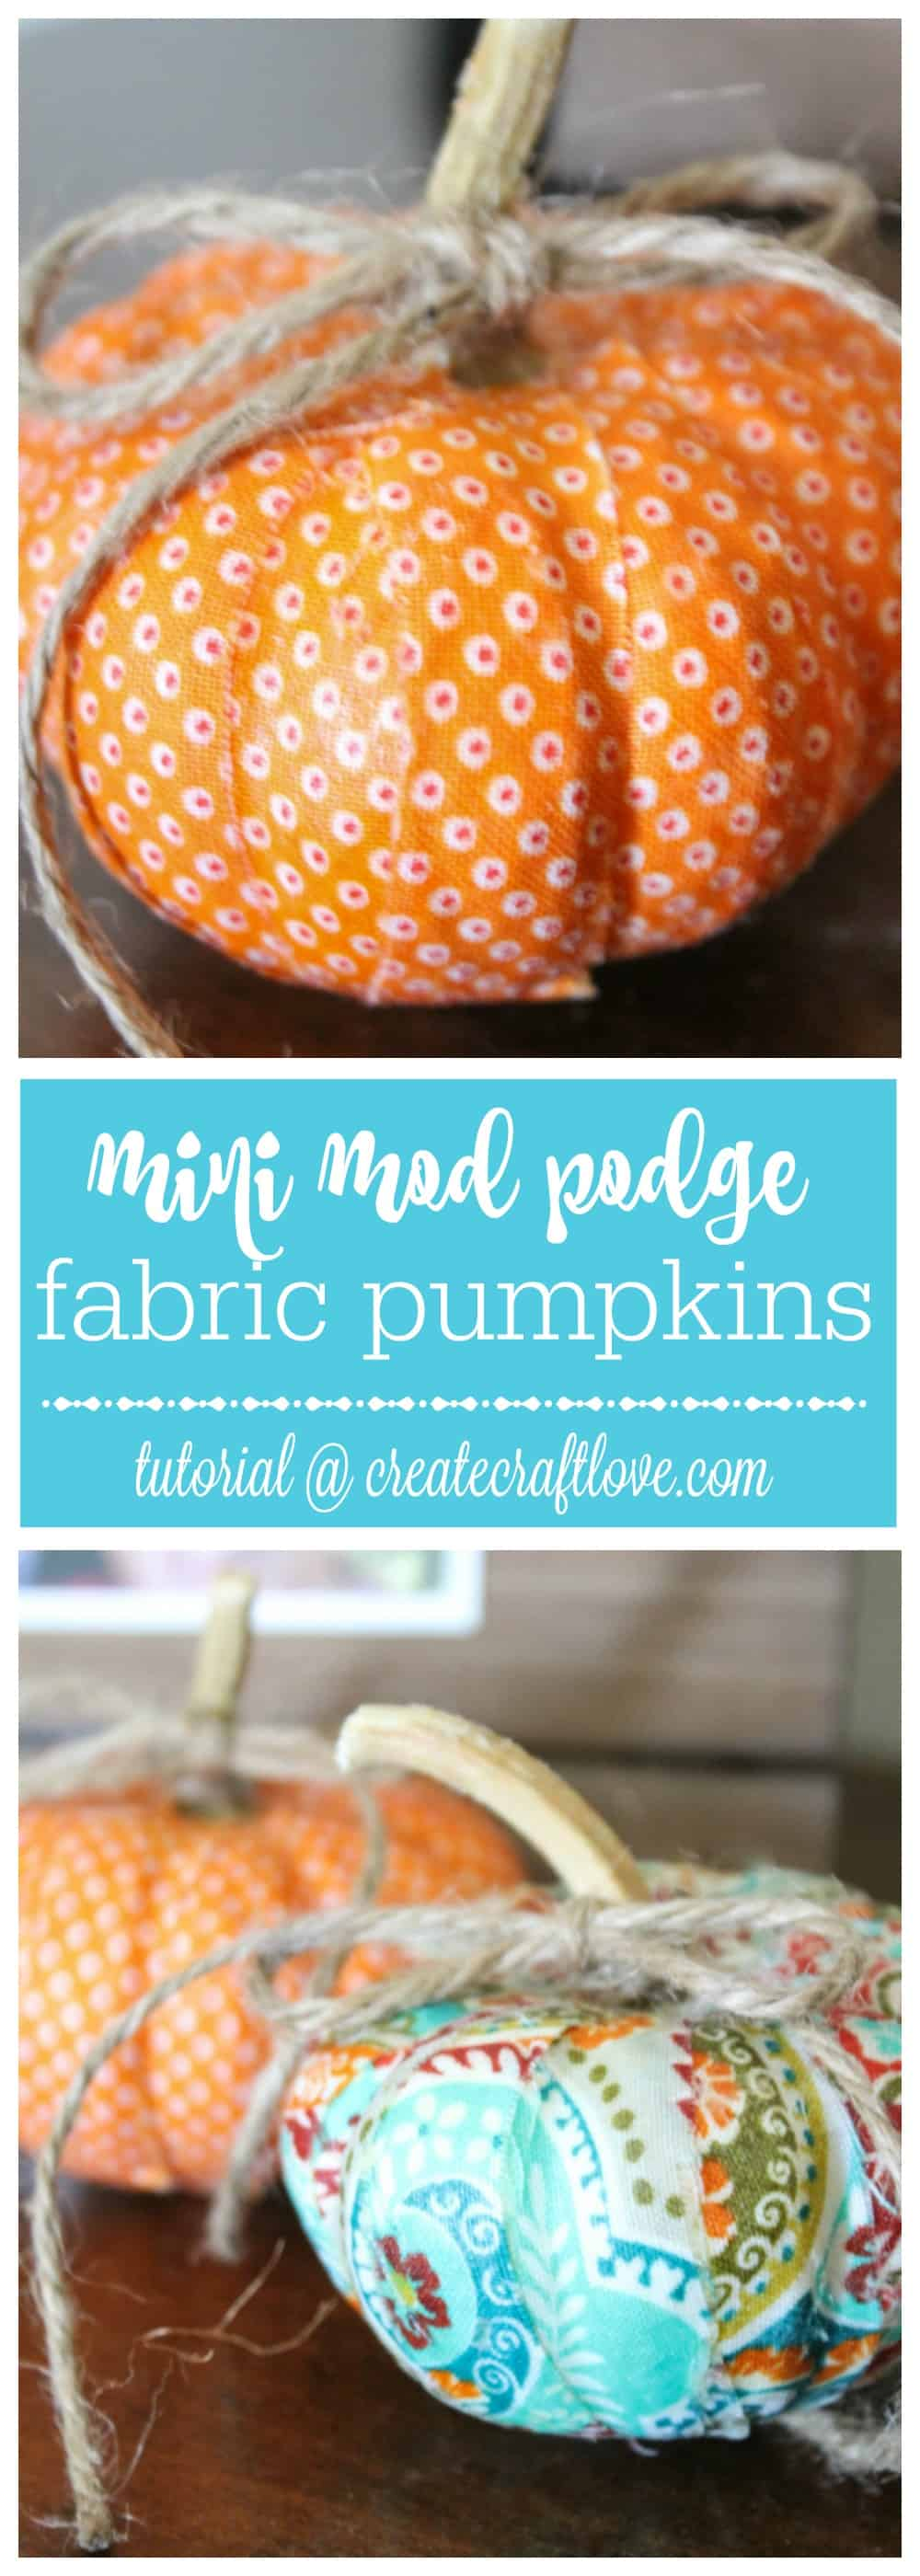 These Mini Mod Podge Fabric Pumpkins are a bright and colorful way to add to your fall decor!